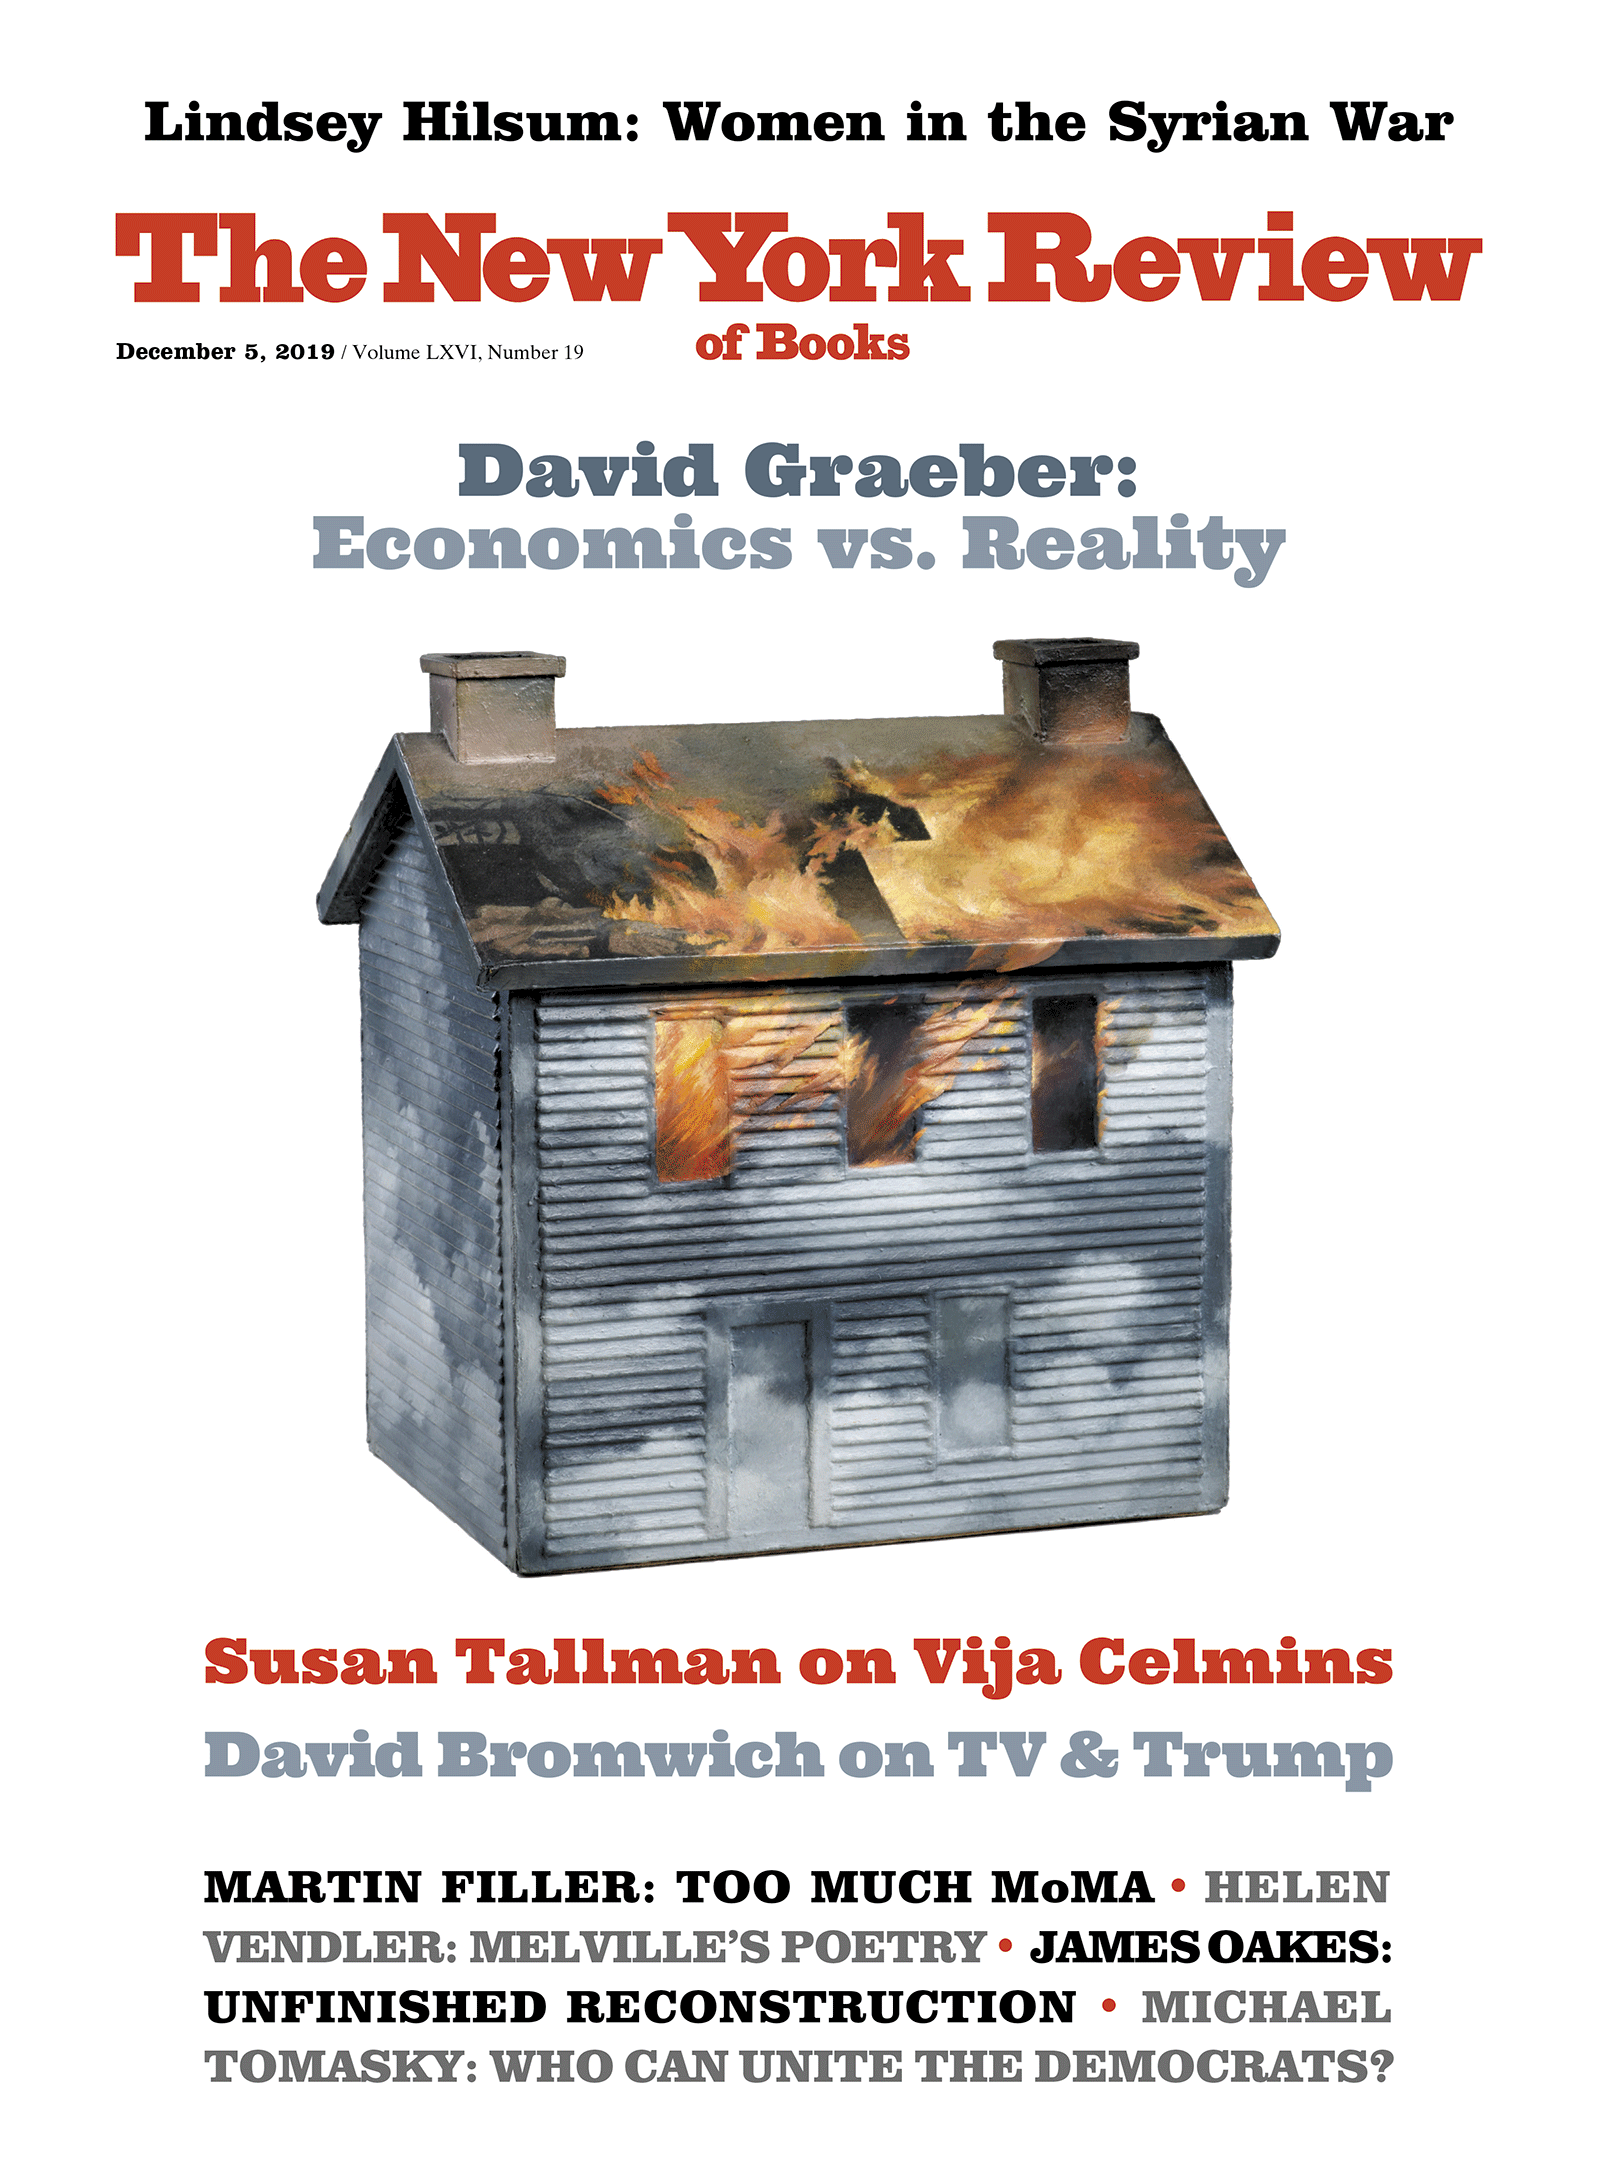 Image of the December 5, 2019 issue cover.